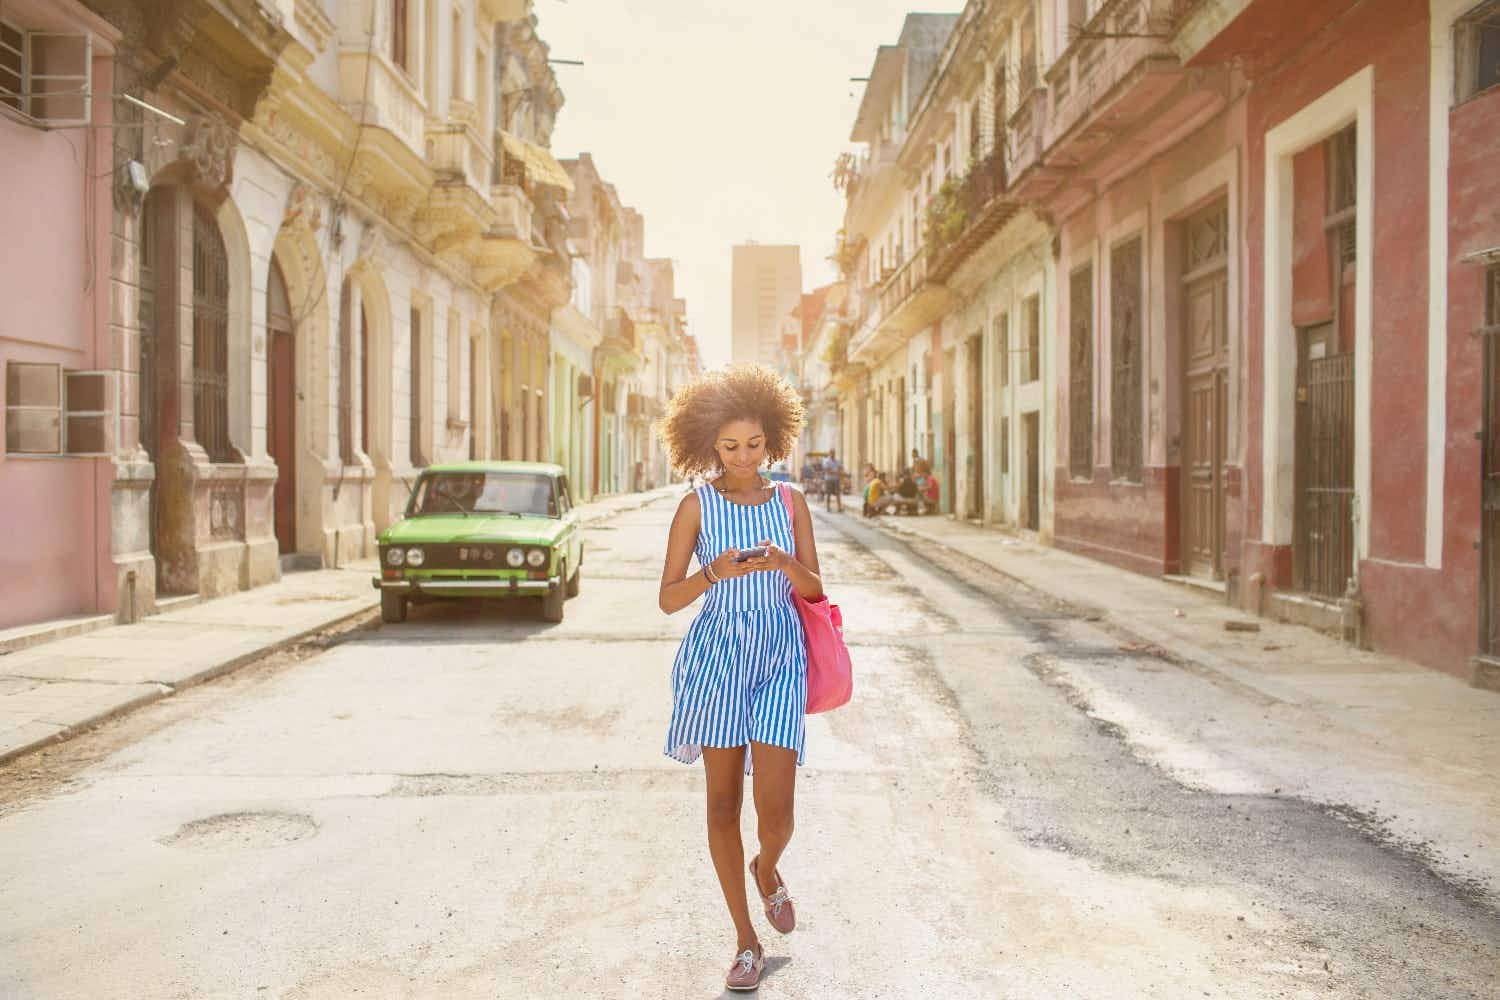 Cuba is the fastest-growing spot for solo female travellers